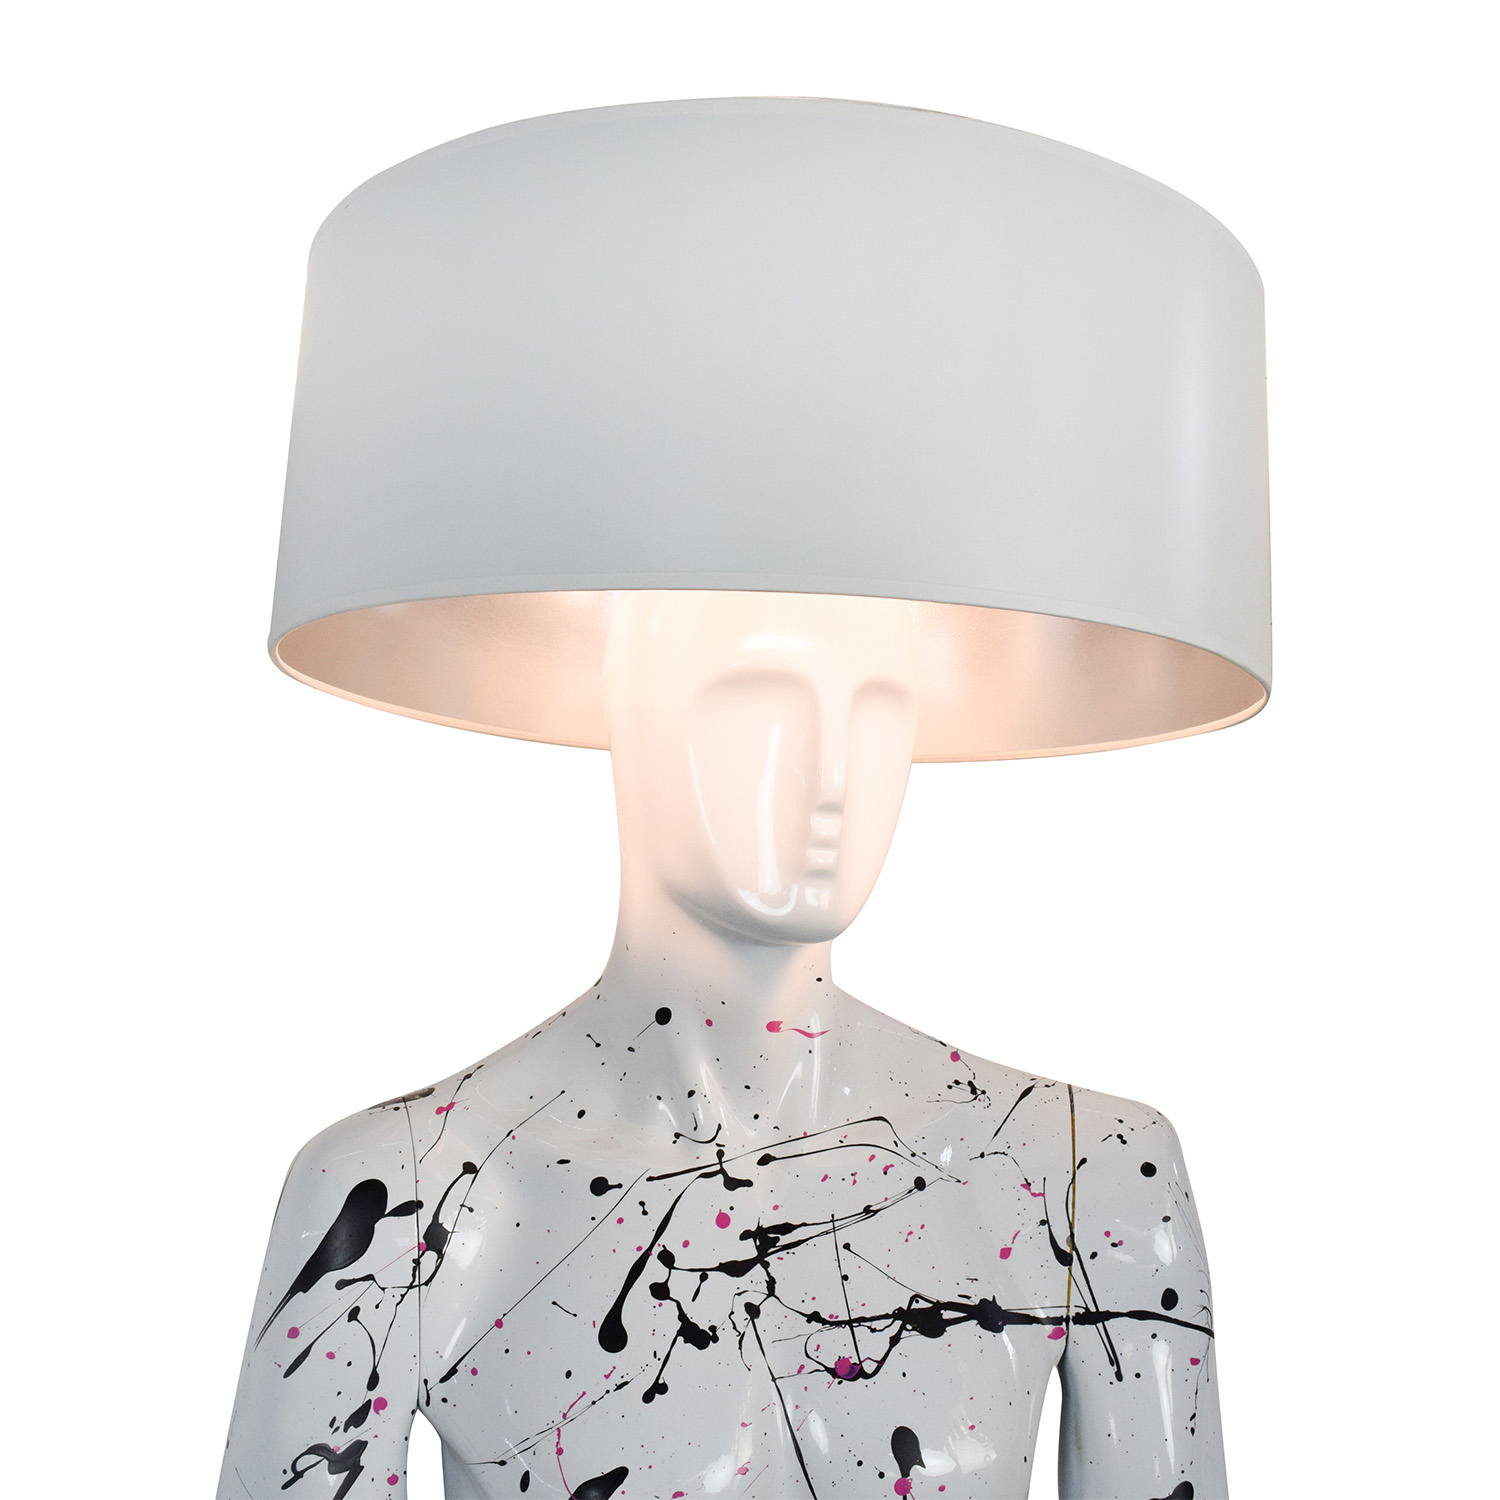 made a amputee sale his auction severed leg ebay man lap unclick sell scuttles won t this from lamp let